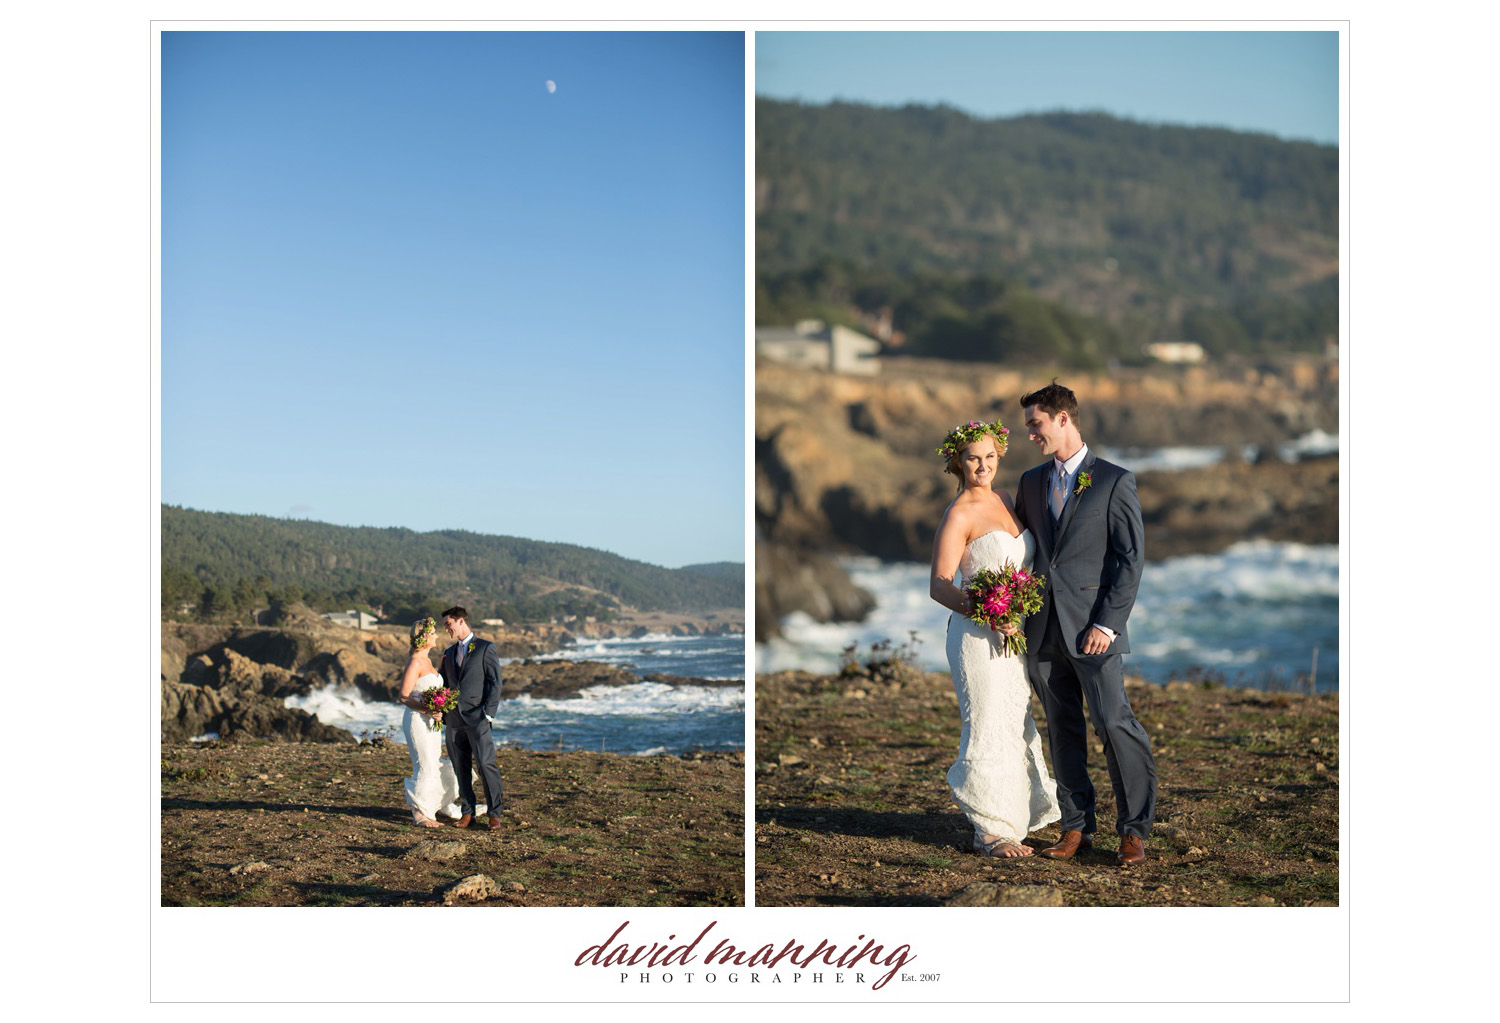 Sea-Ranch-Sonoma-Destination-Wedding-David-Manning-Photographers-141101-0033.jpg